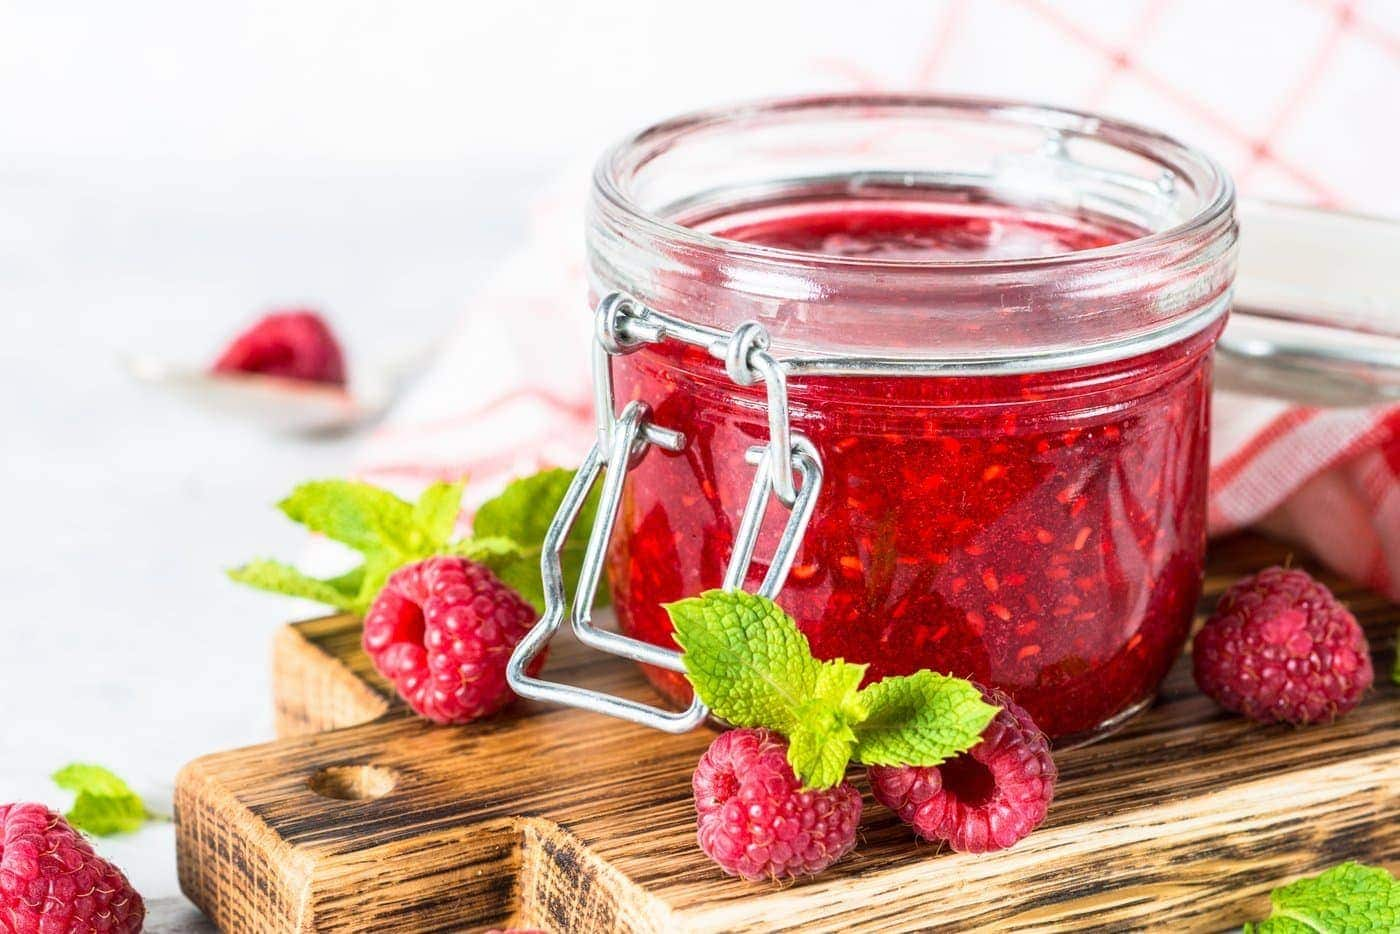 homemade jam and jelly